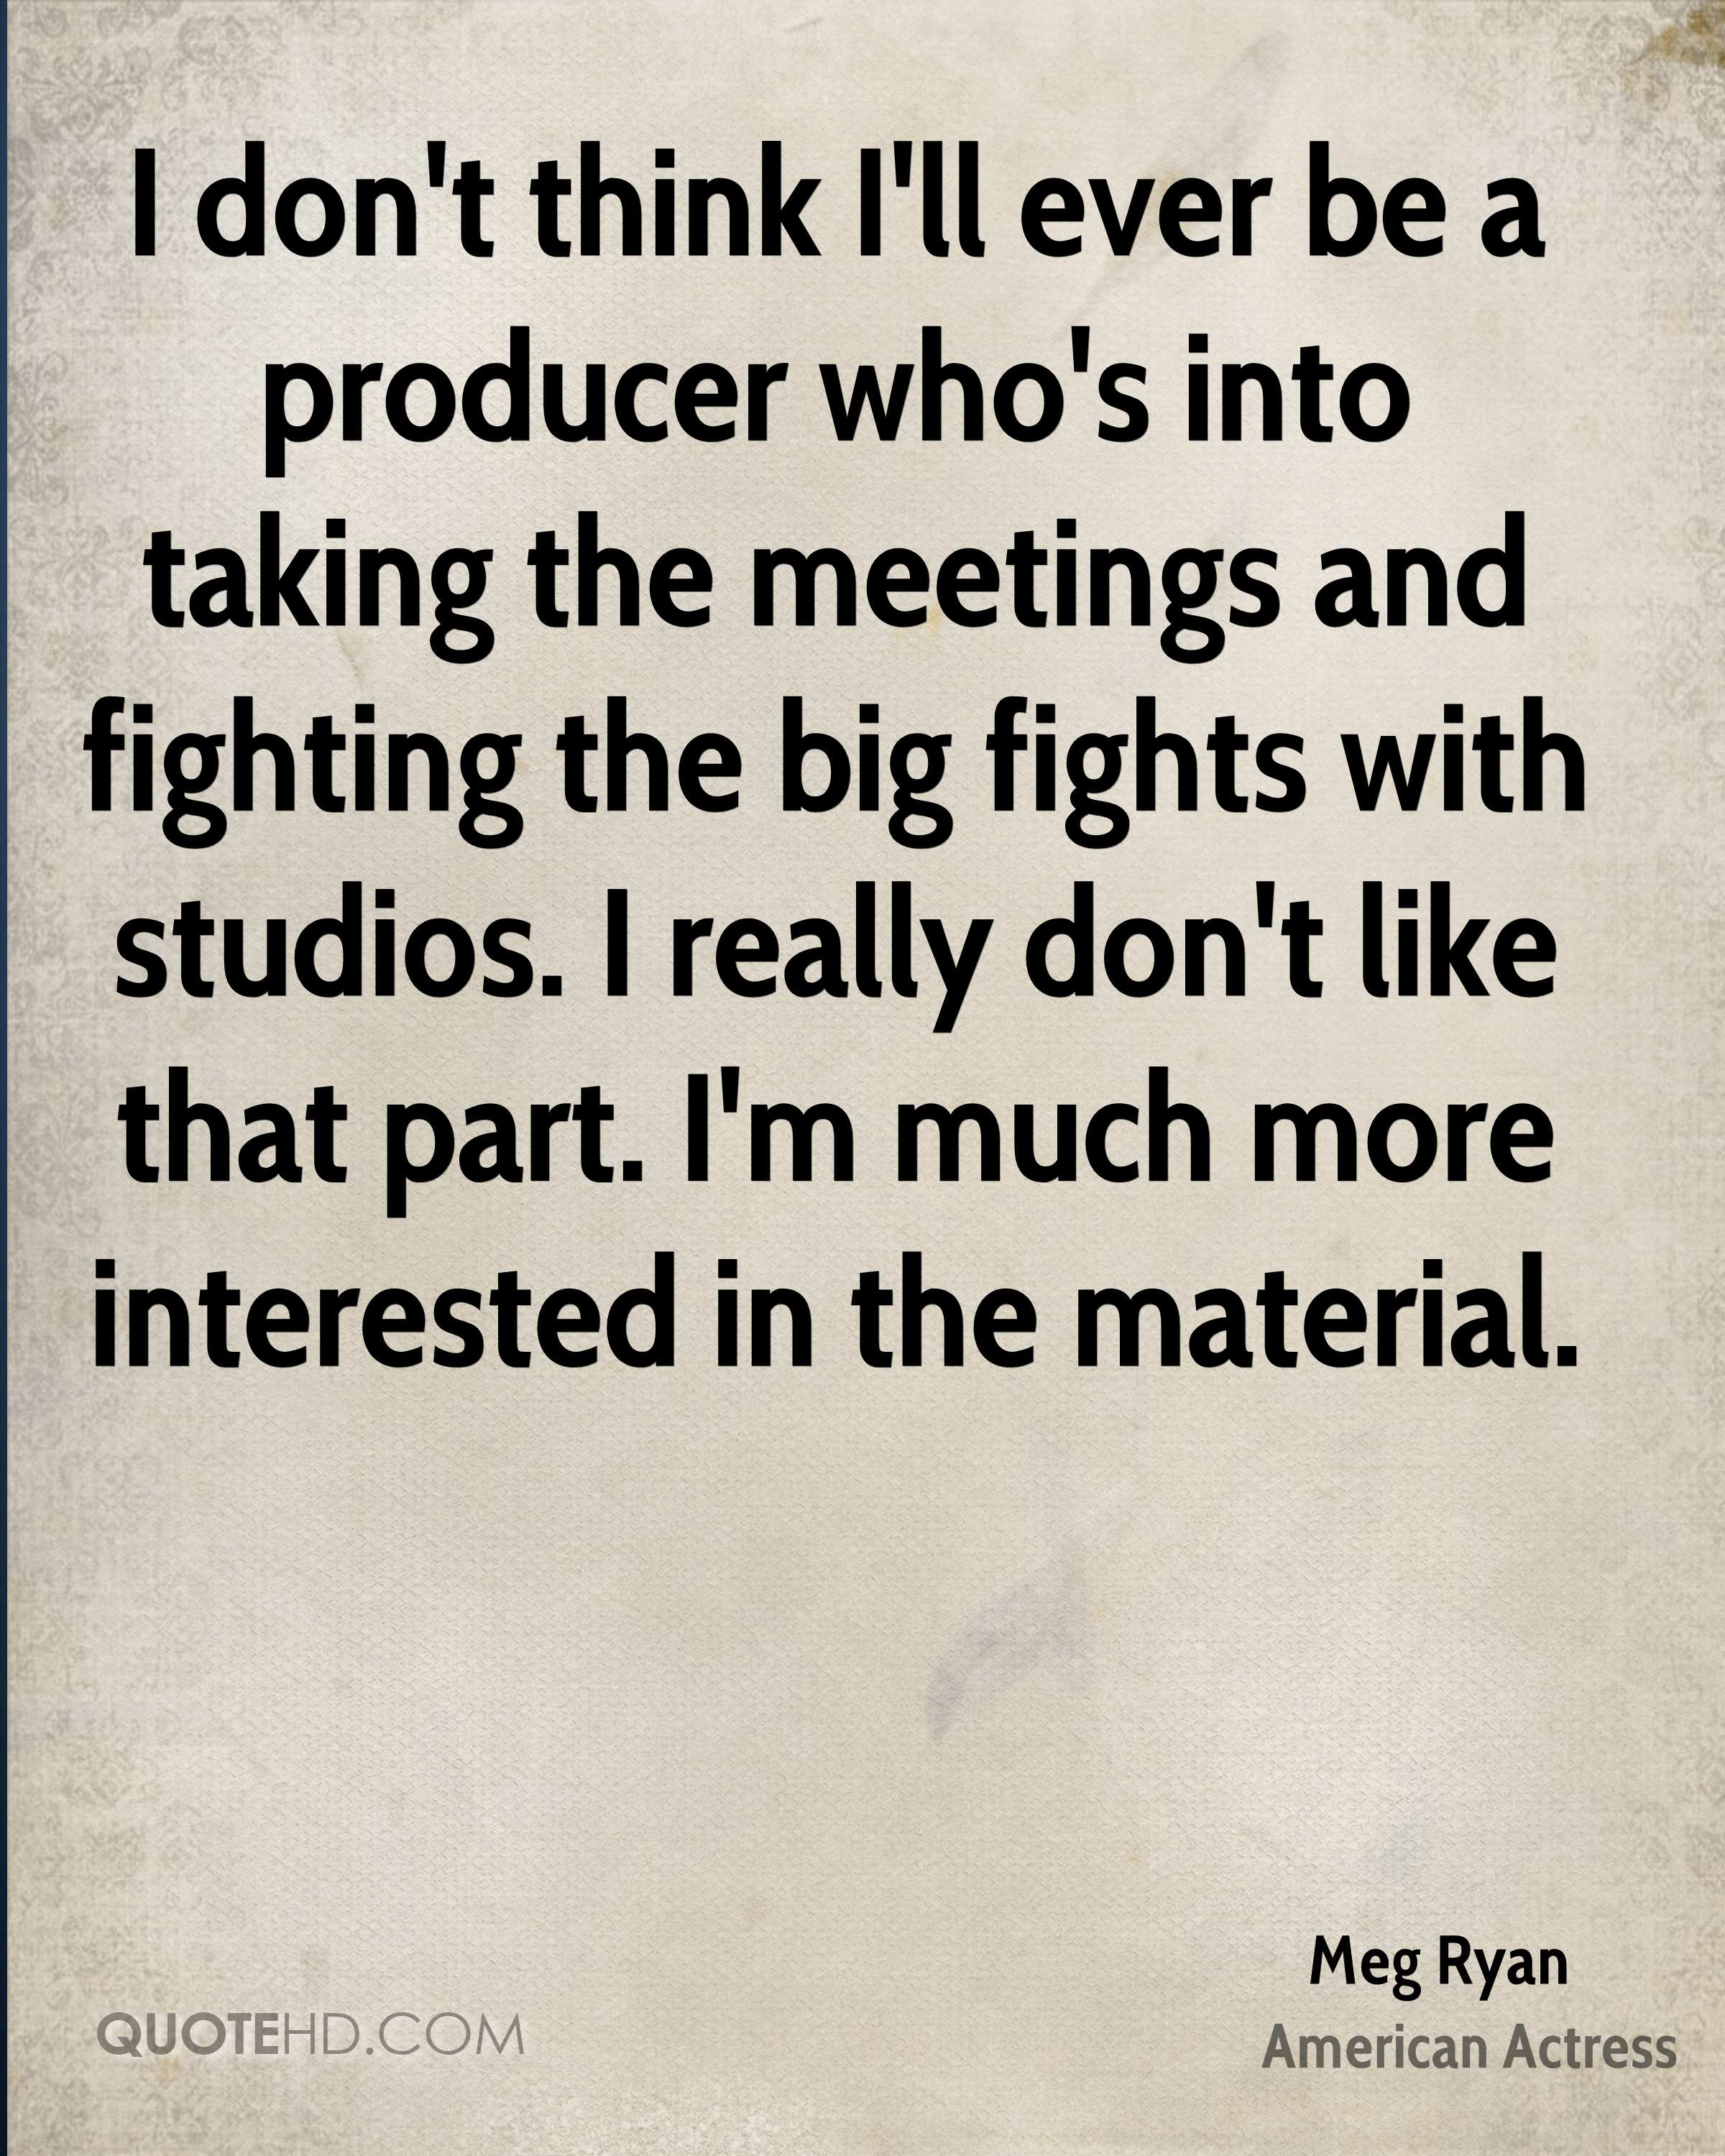 I don't think I'll ever be a producer who's into taking the meetings and fighting the big fights with studios. I really don't like that part. I'm much more interested in the material.